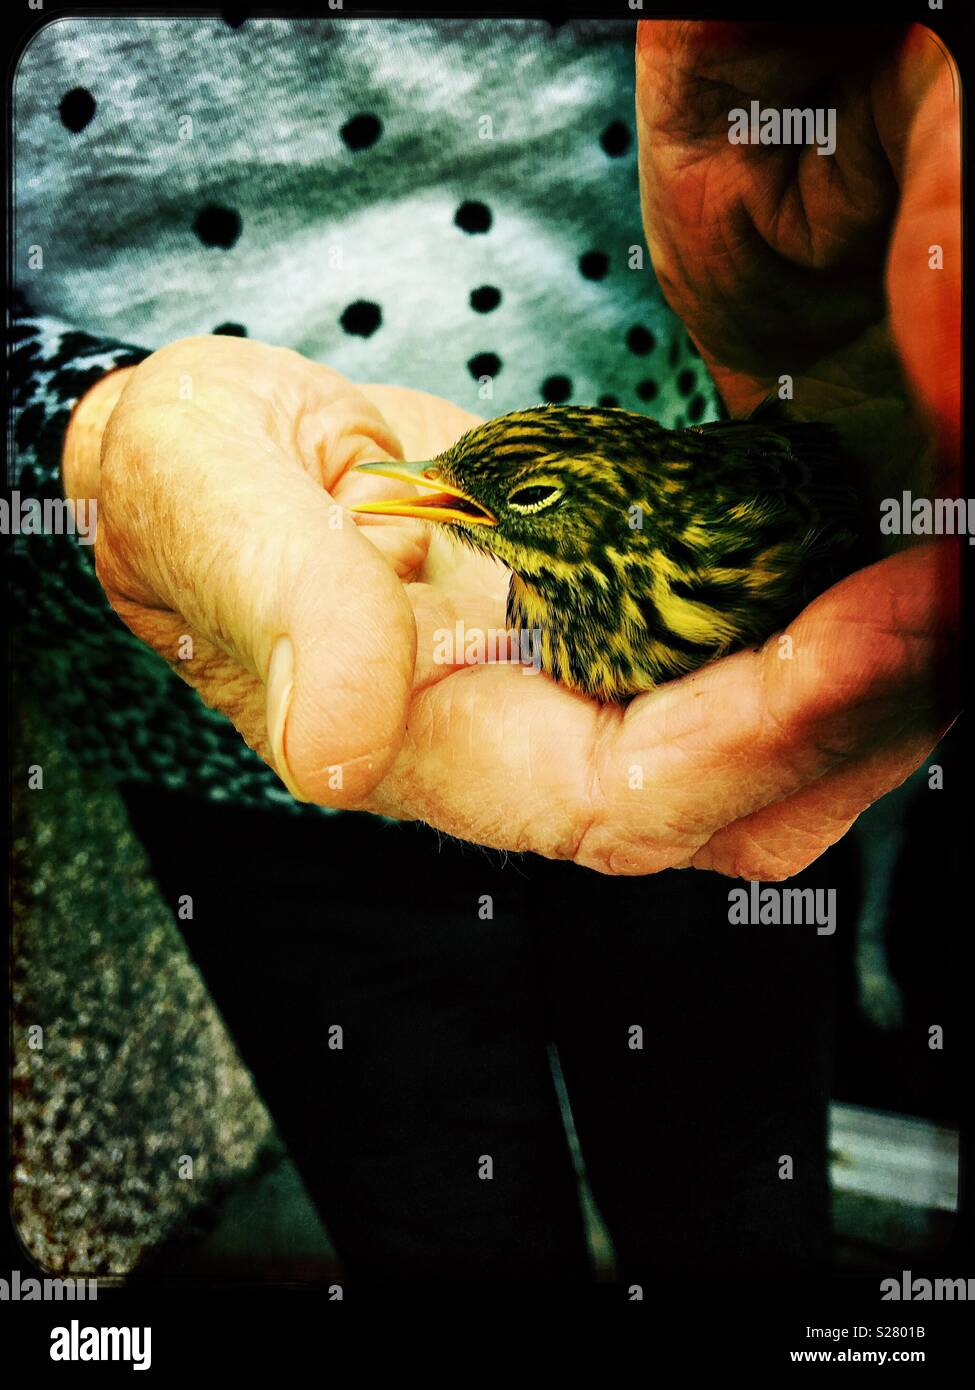 Stunned young starling in gentle hand - Stock Image